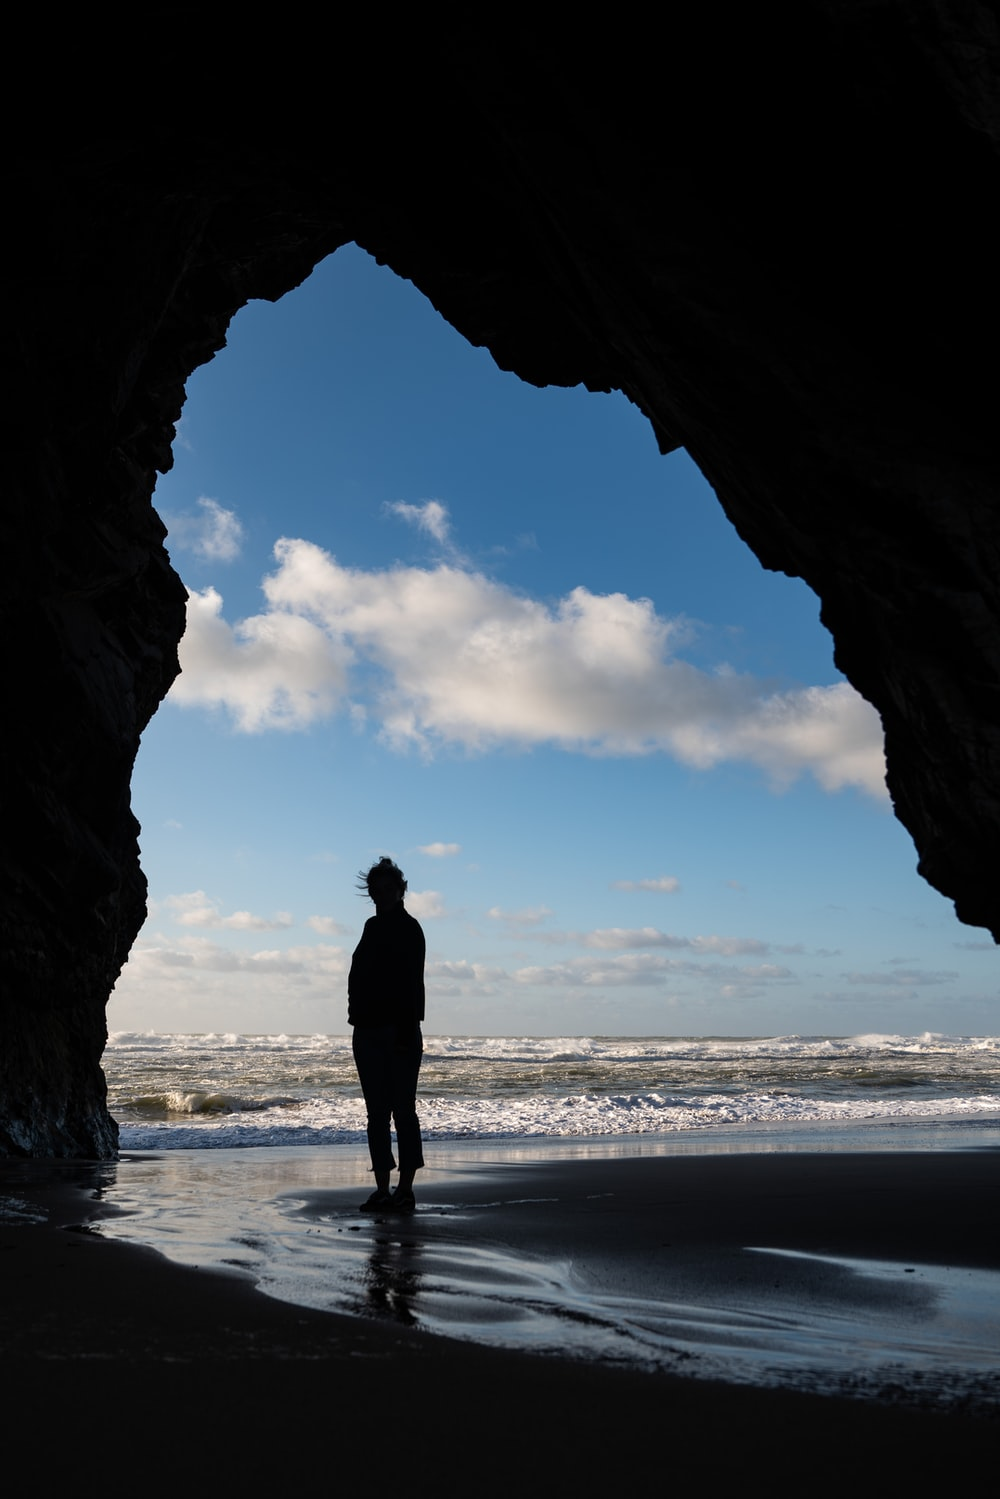 silhouette of man standing on seashore during daytime